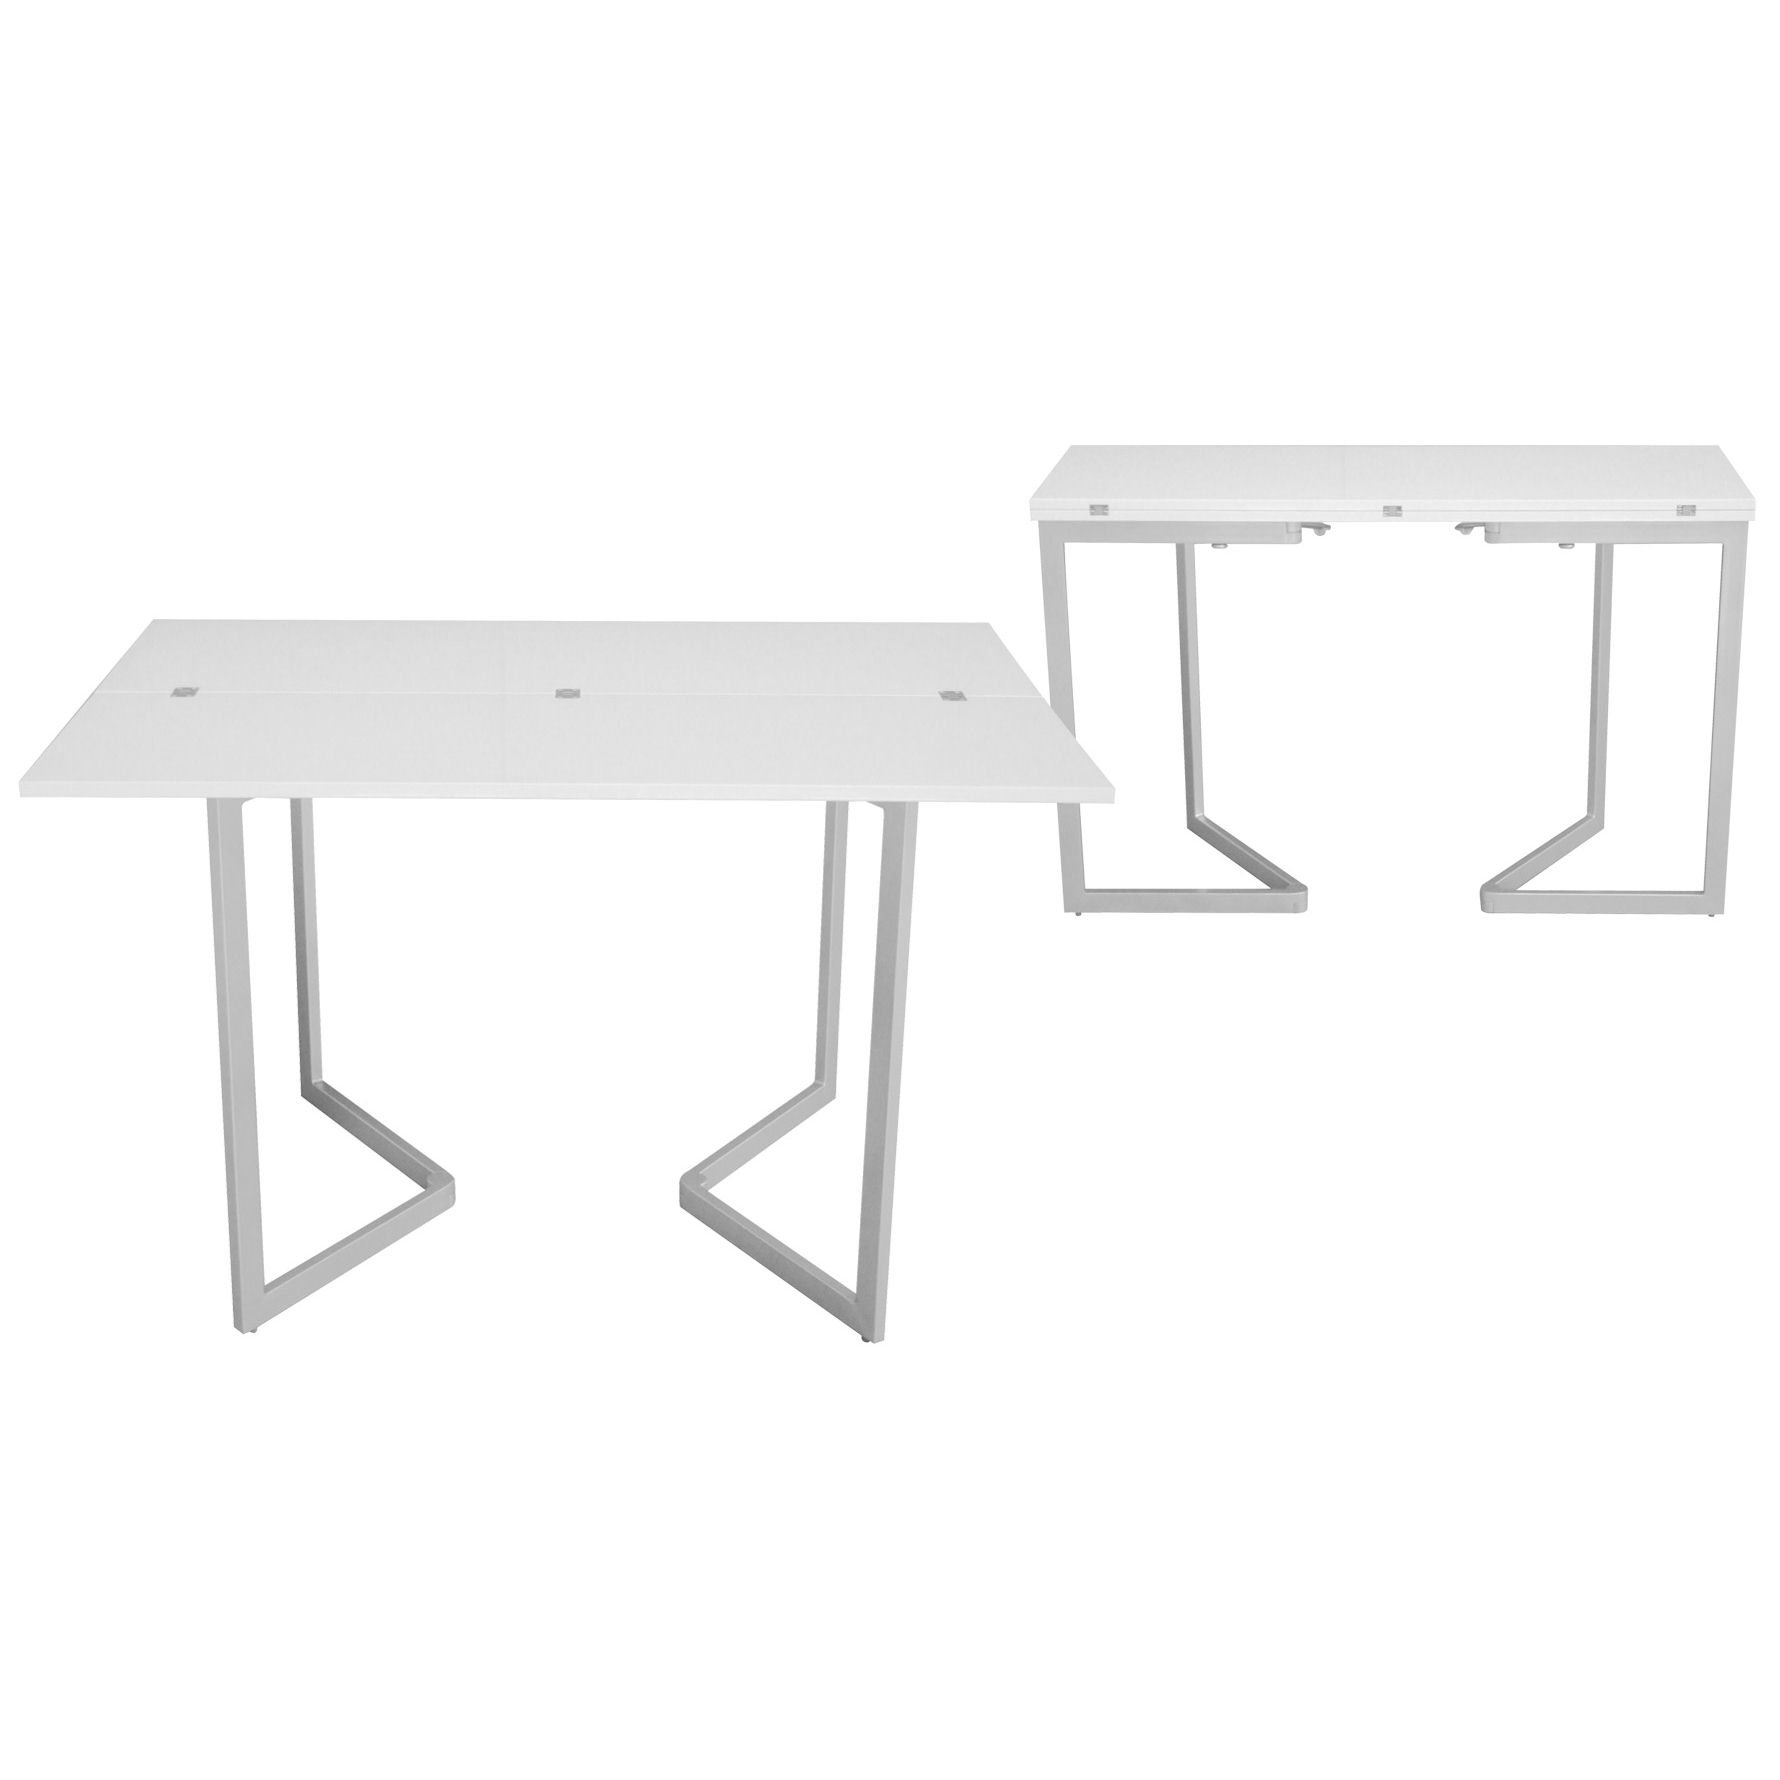 Deco in paris table console extensible blanche laquee for Table extensible en hauteur